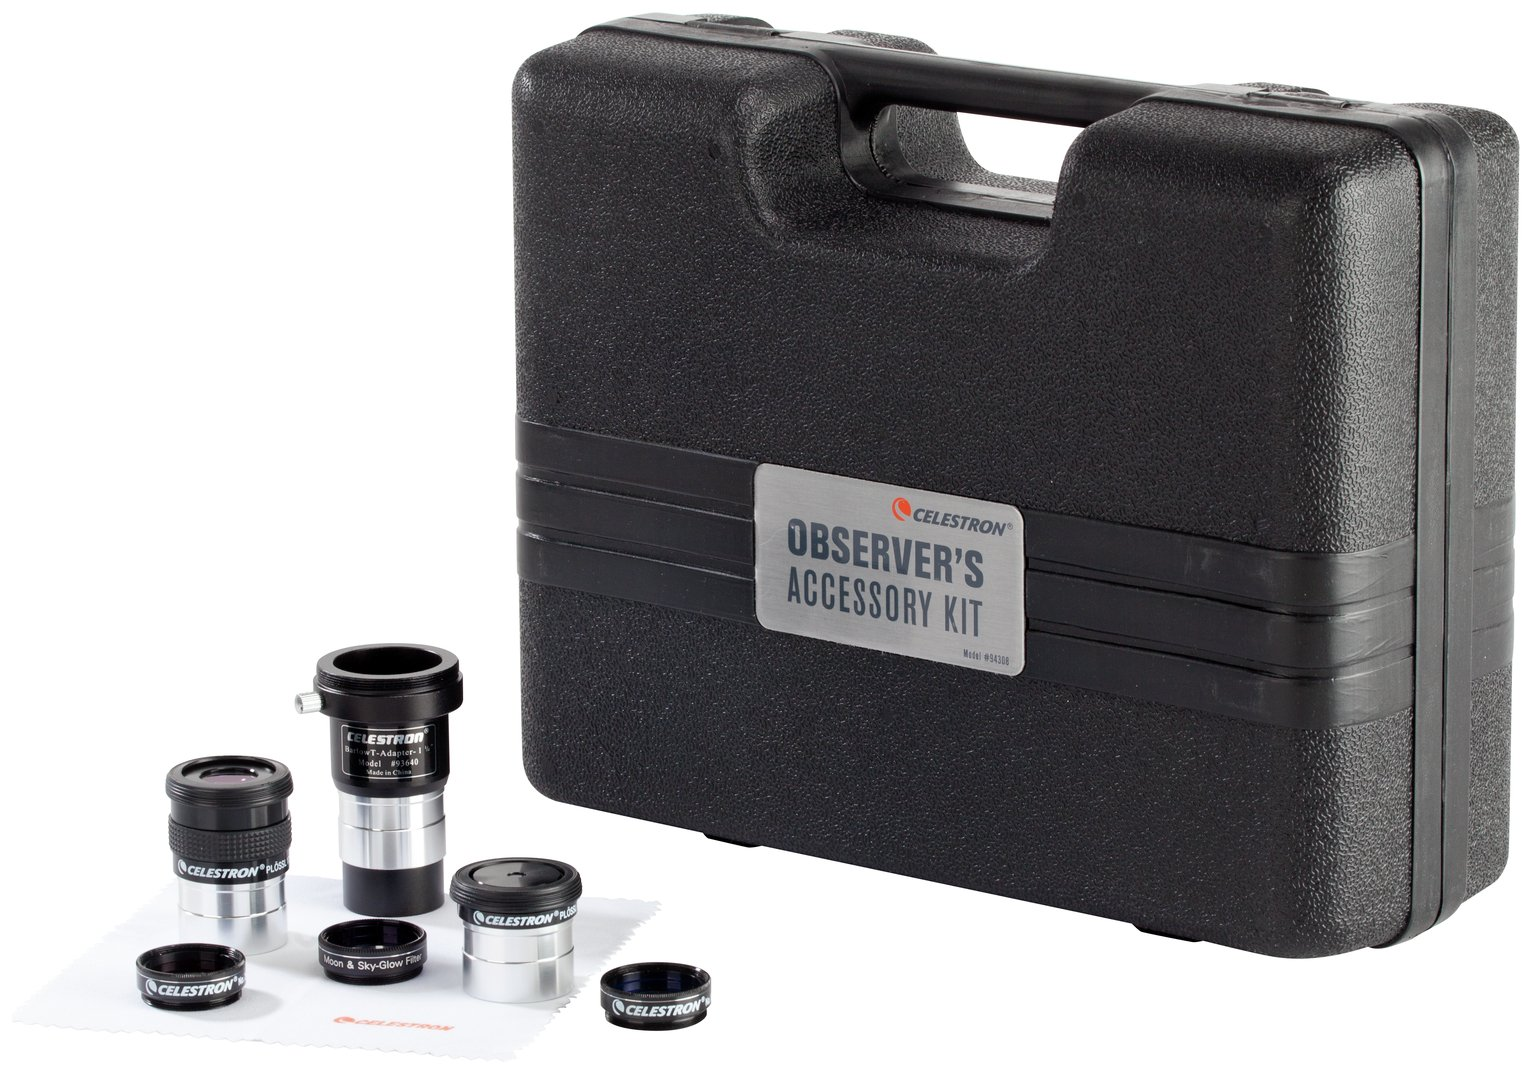 Celestron Observers Telescope Accessory Kit